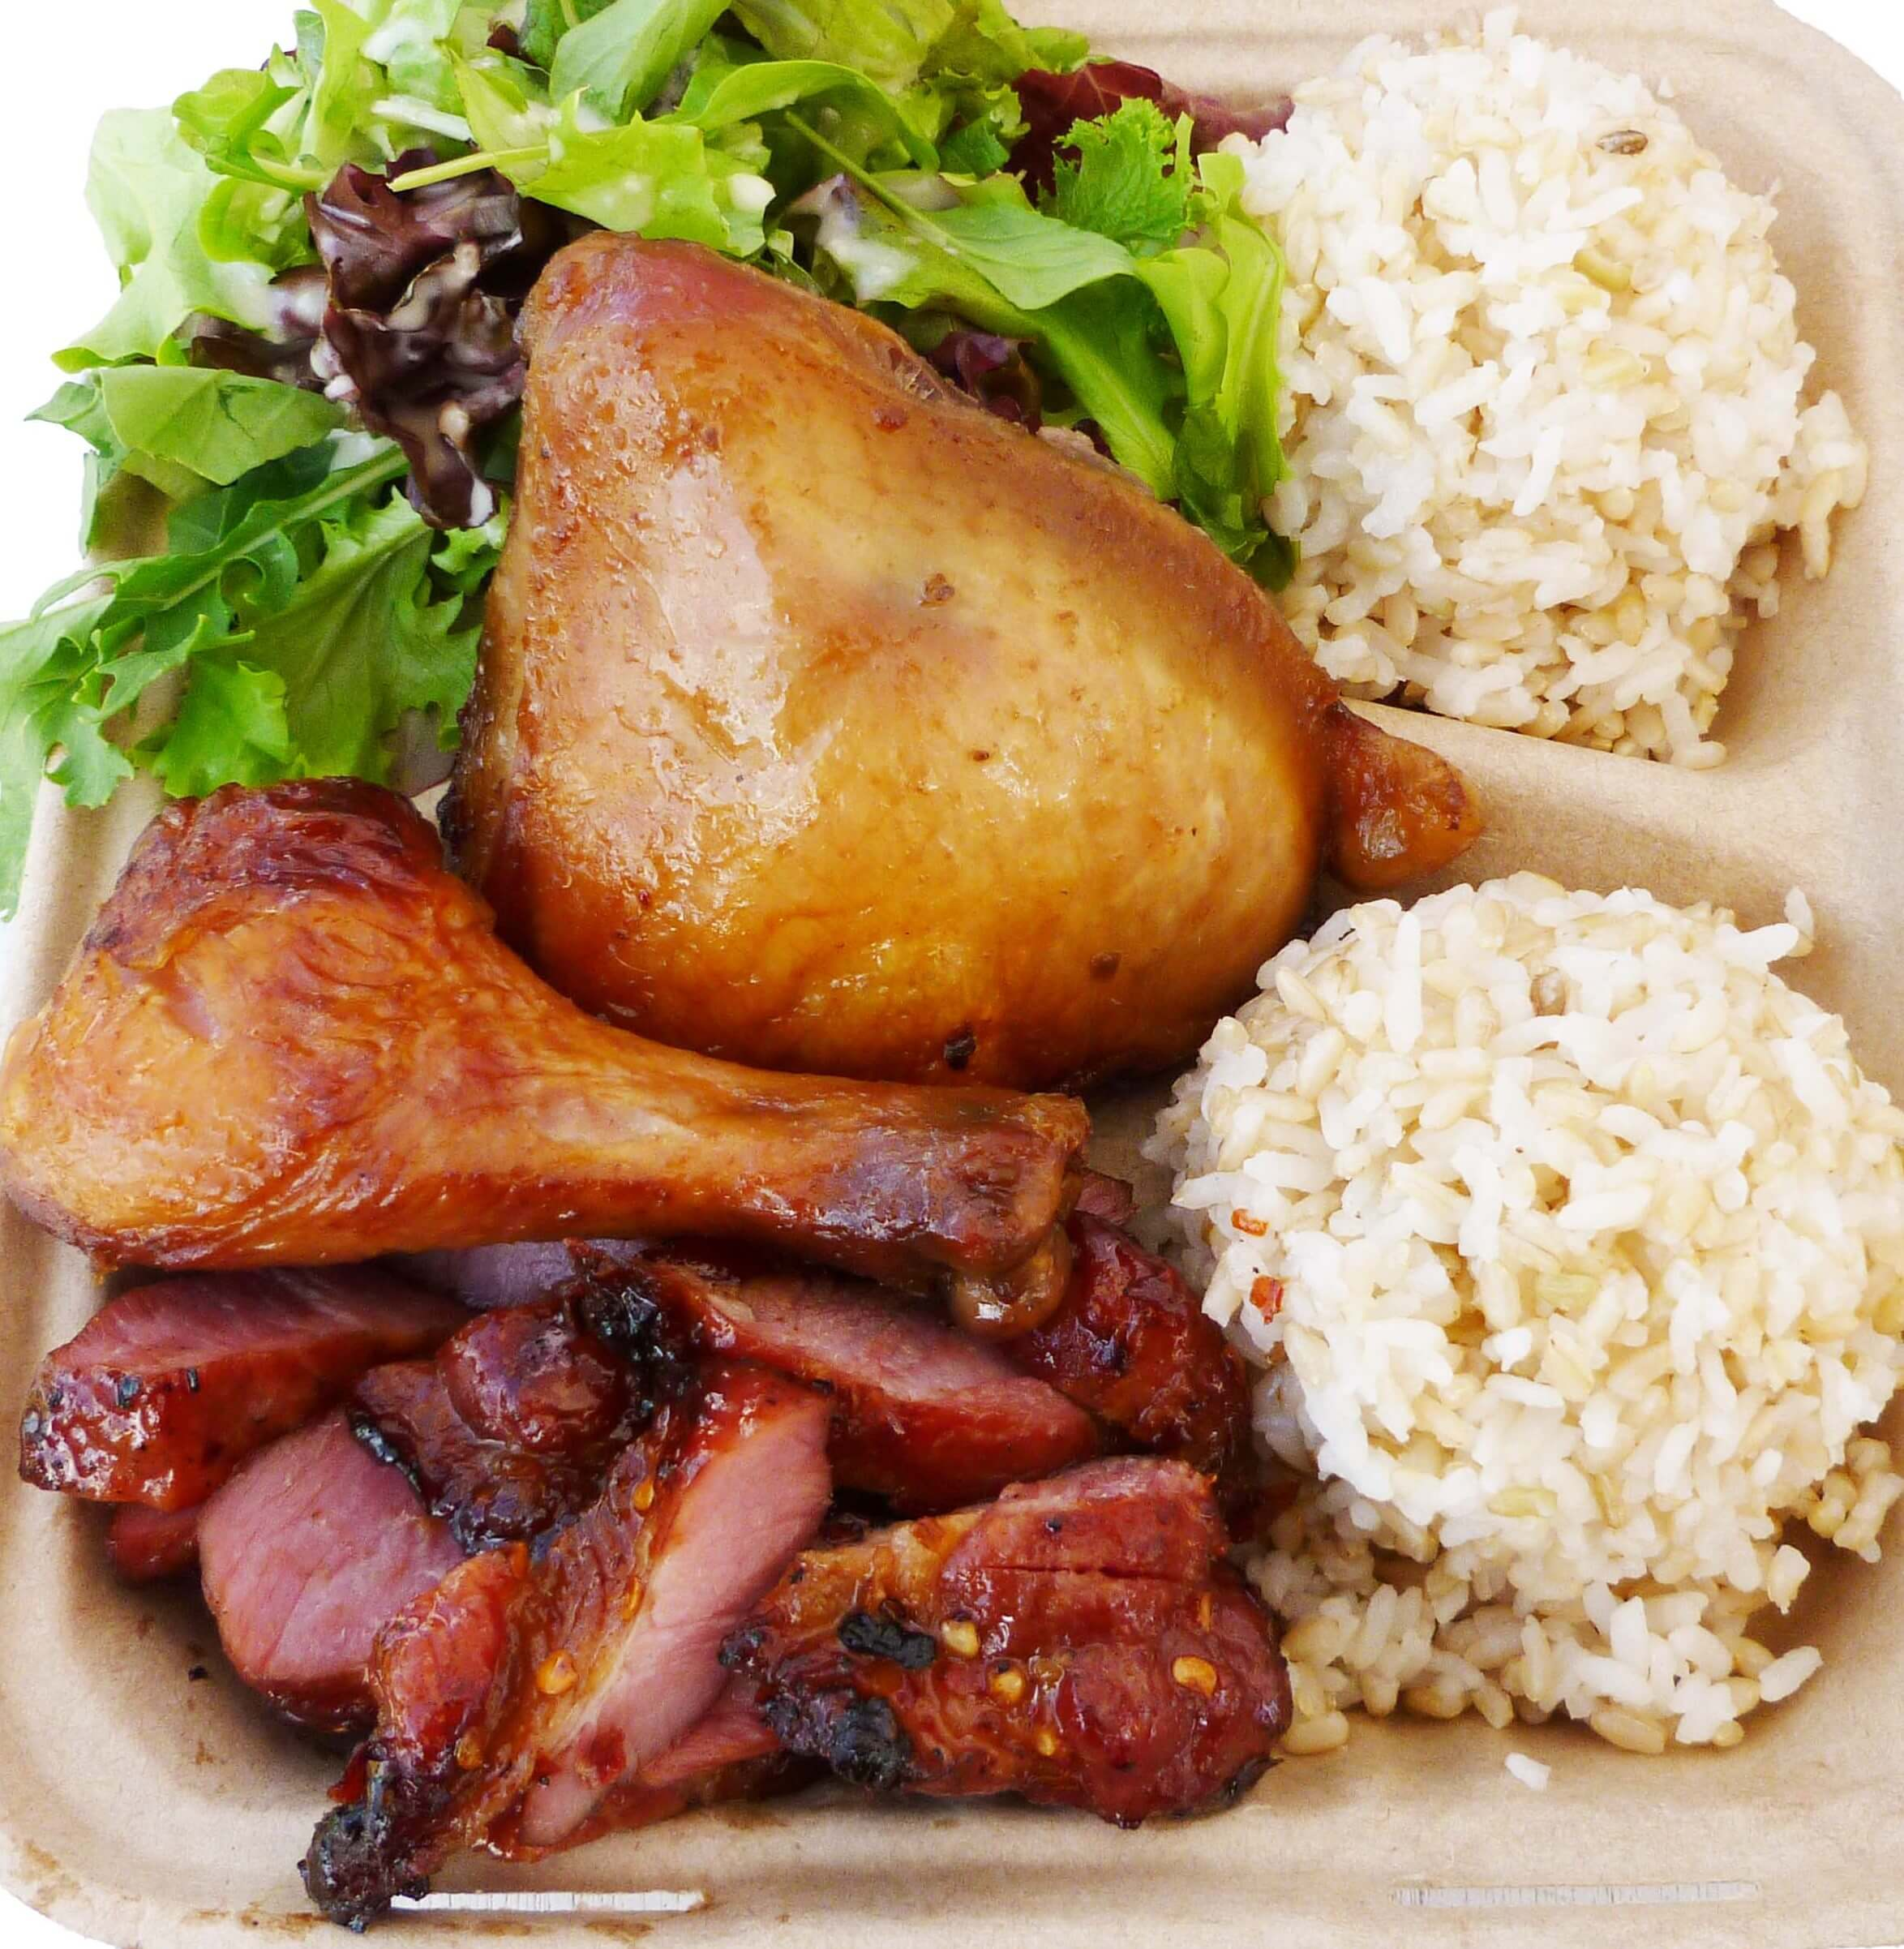 Guava Smoked Mixed Plate Lunch